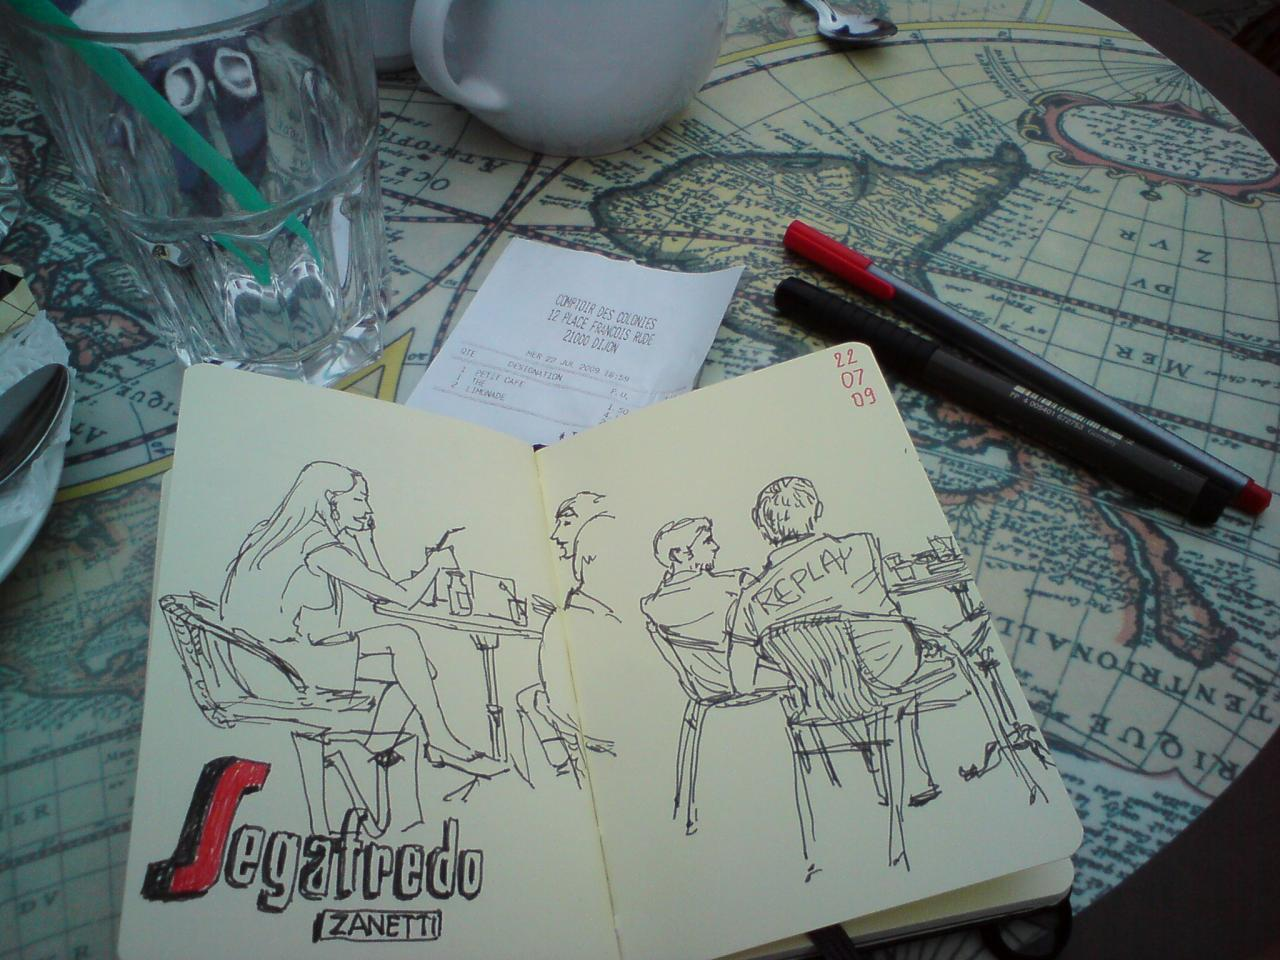 Café sketching in Dijon